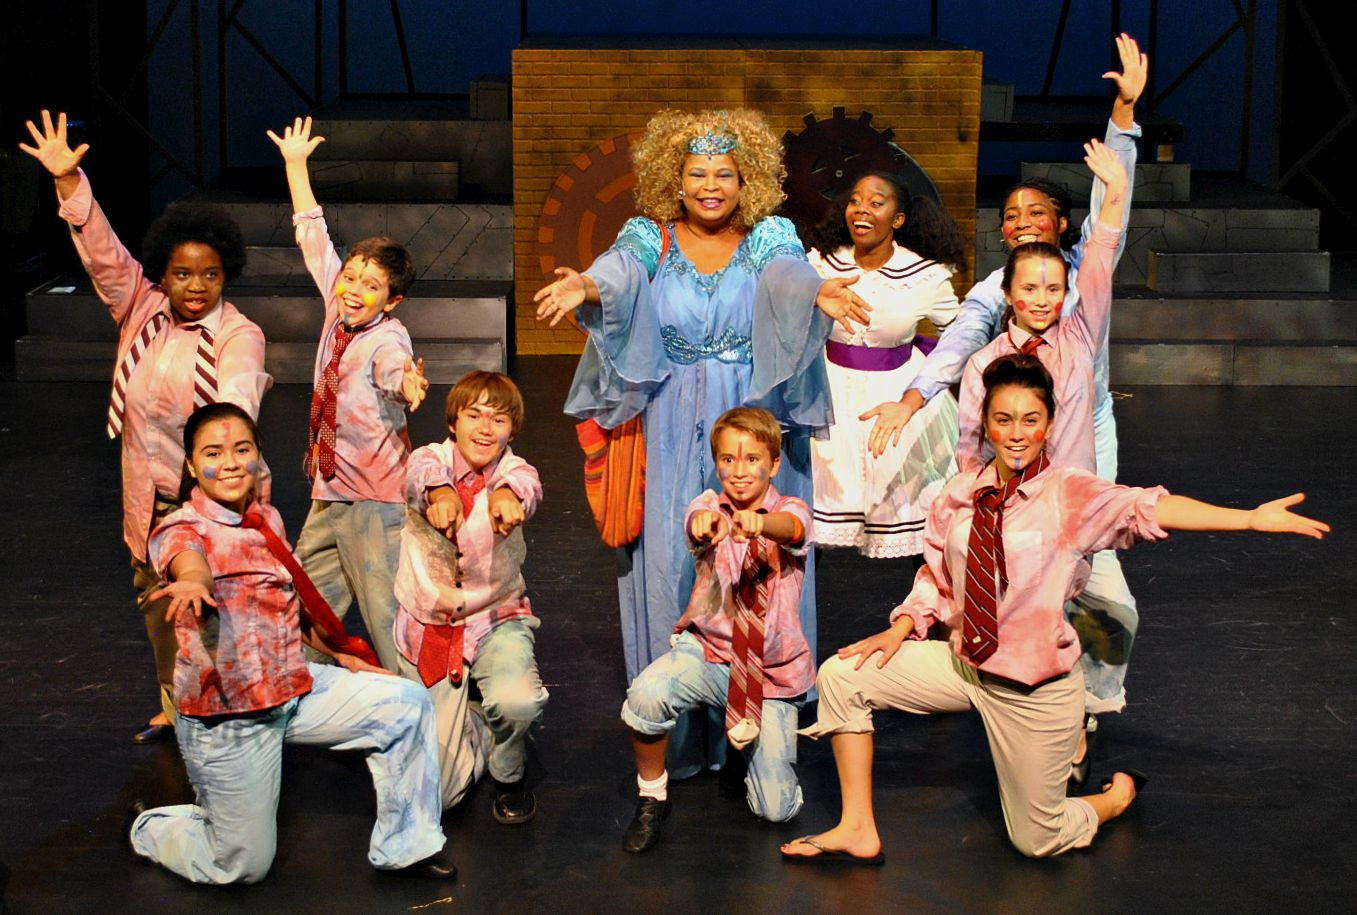 Mesa Encore Theatre. 2015. The Wiz. Photo by Sarah Rodgers